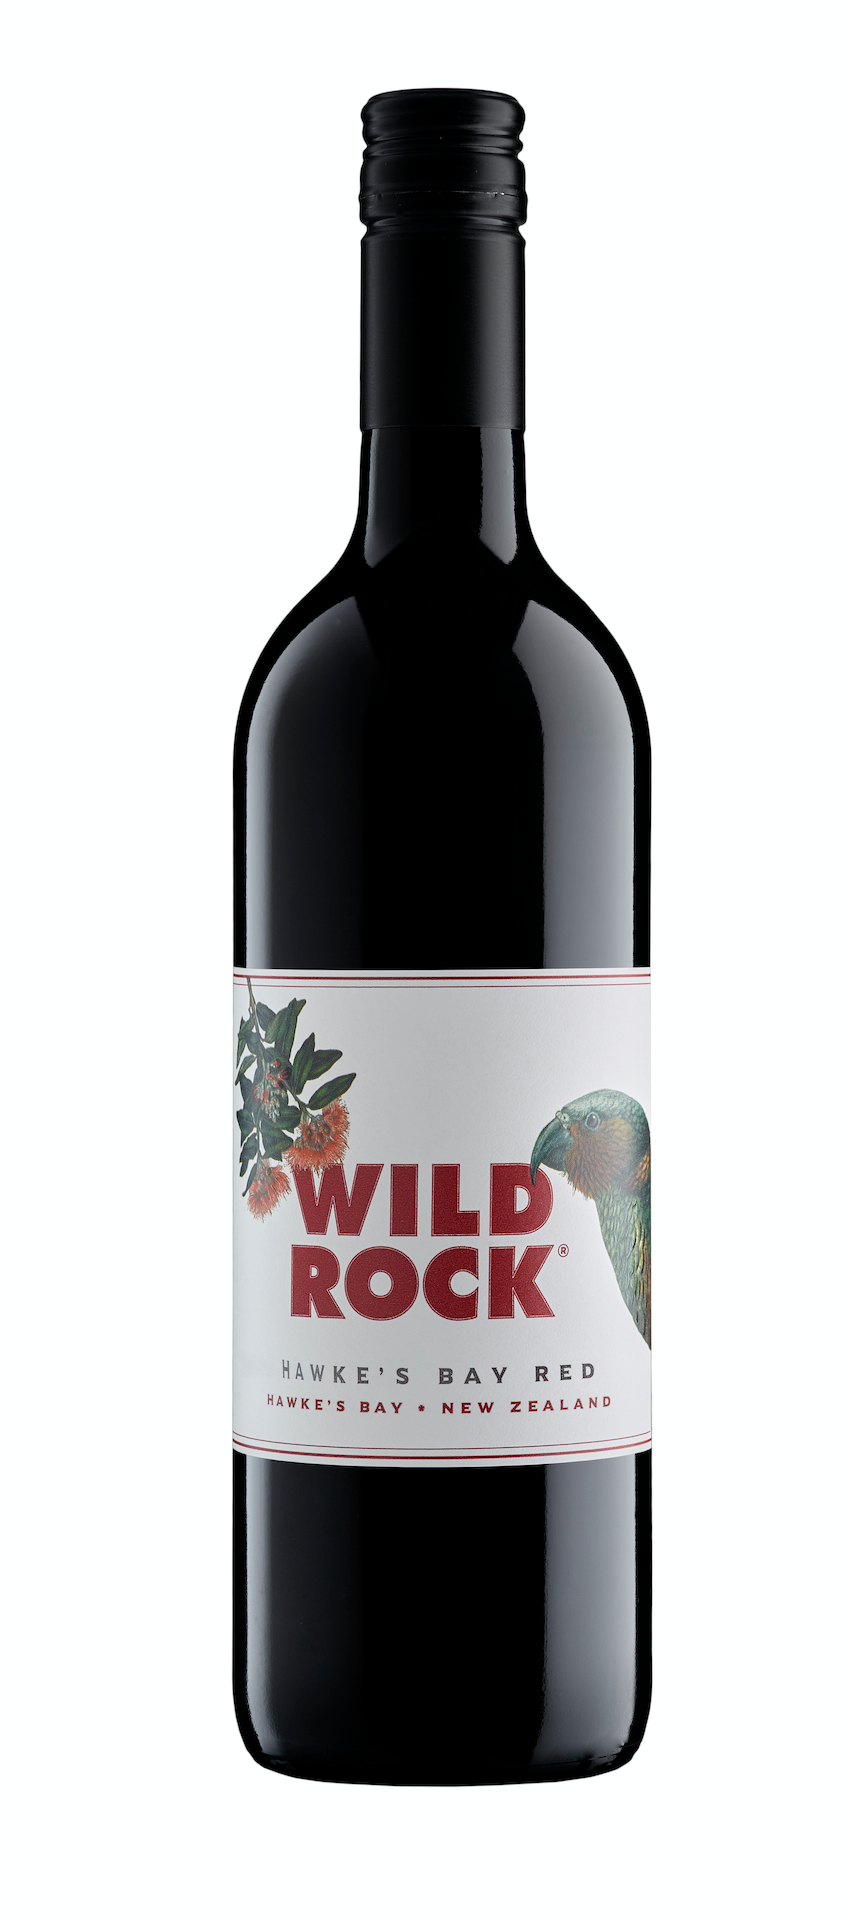 Wild Rock Hawke's Bay Red